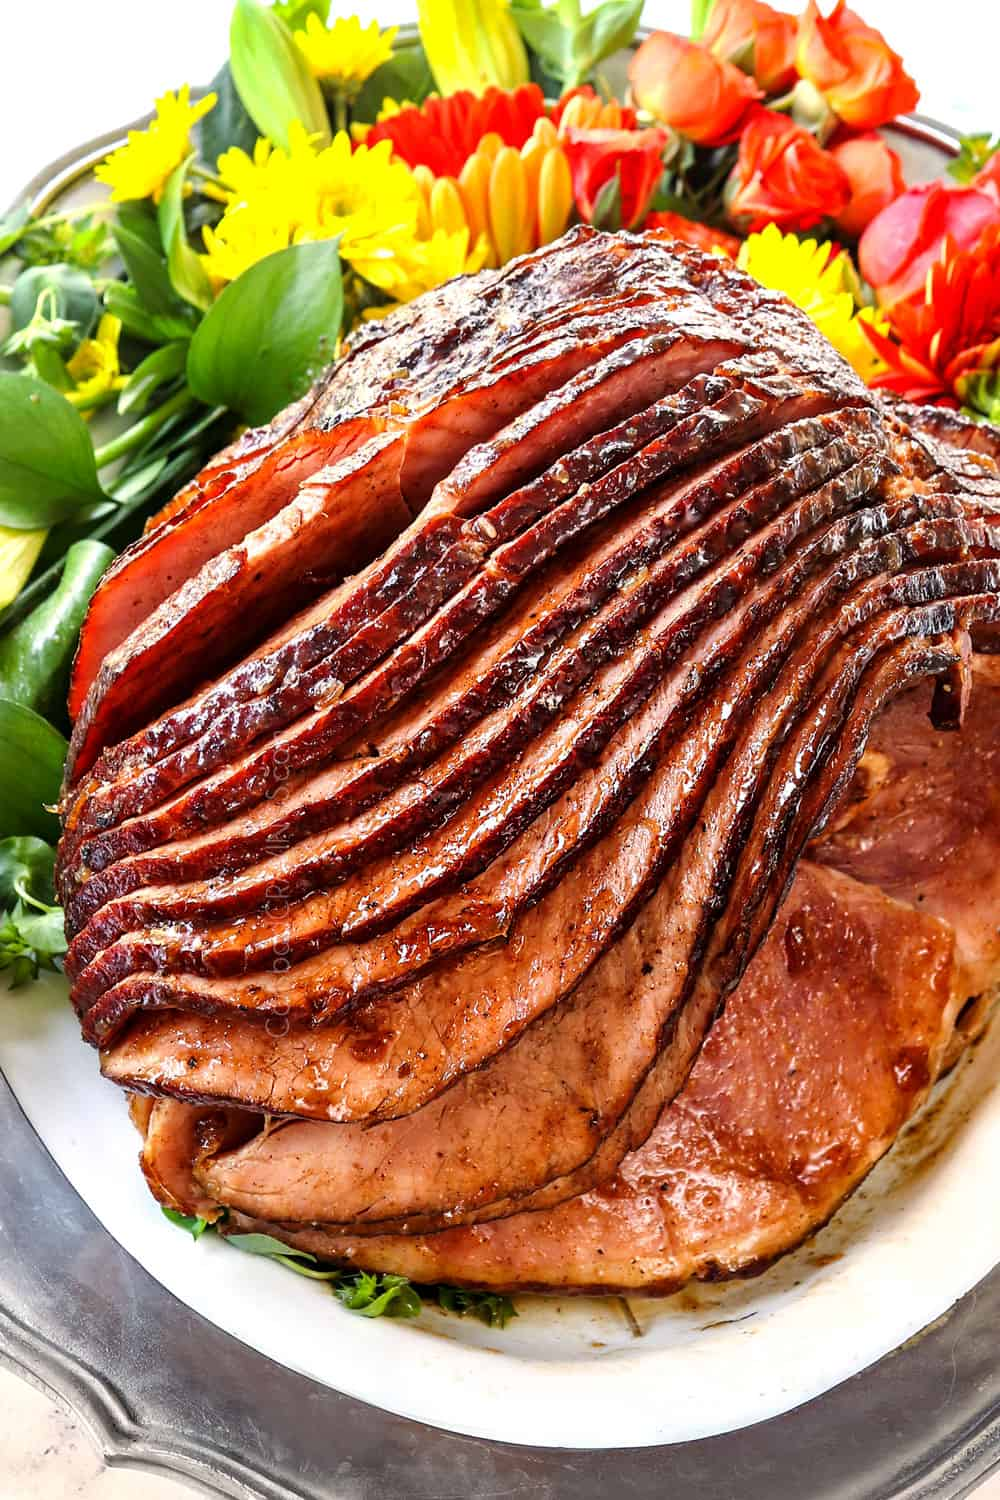 showing how to make ham glaze recipe with brown sugar and pineapple by letting the ham rest on a platter after baking